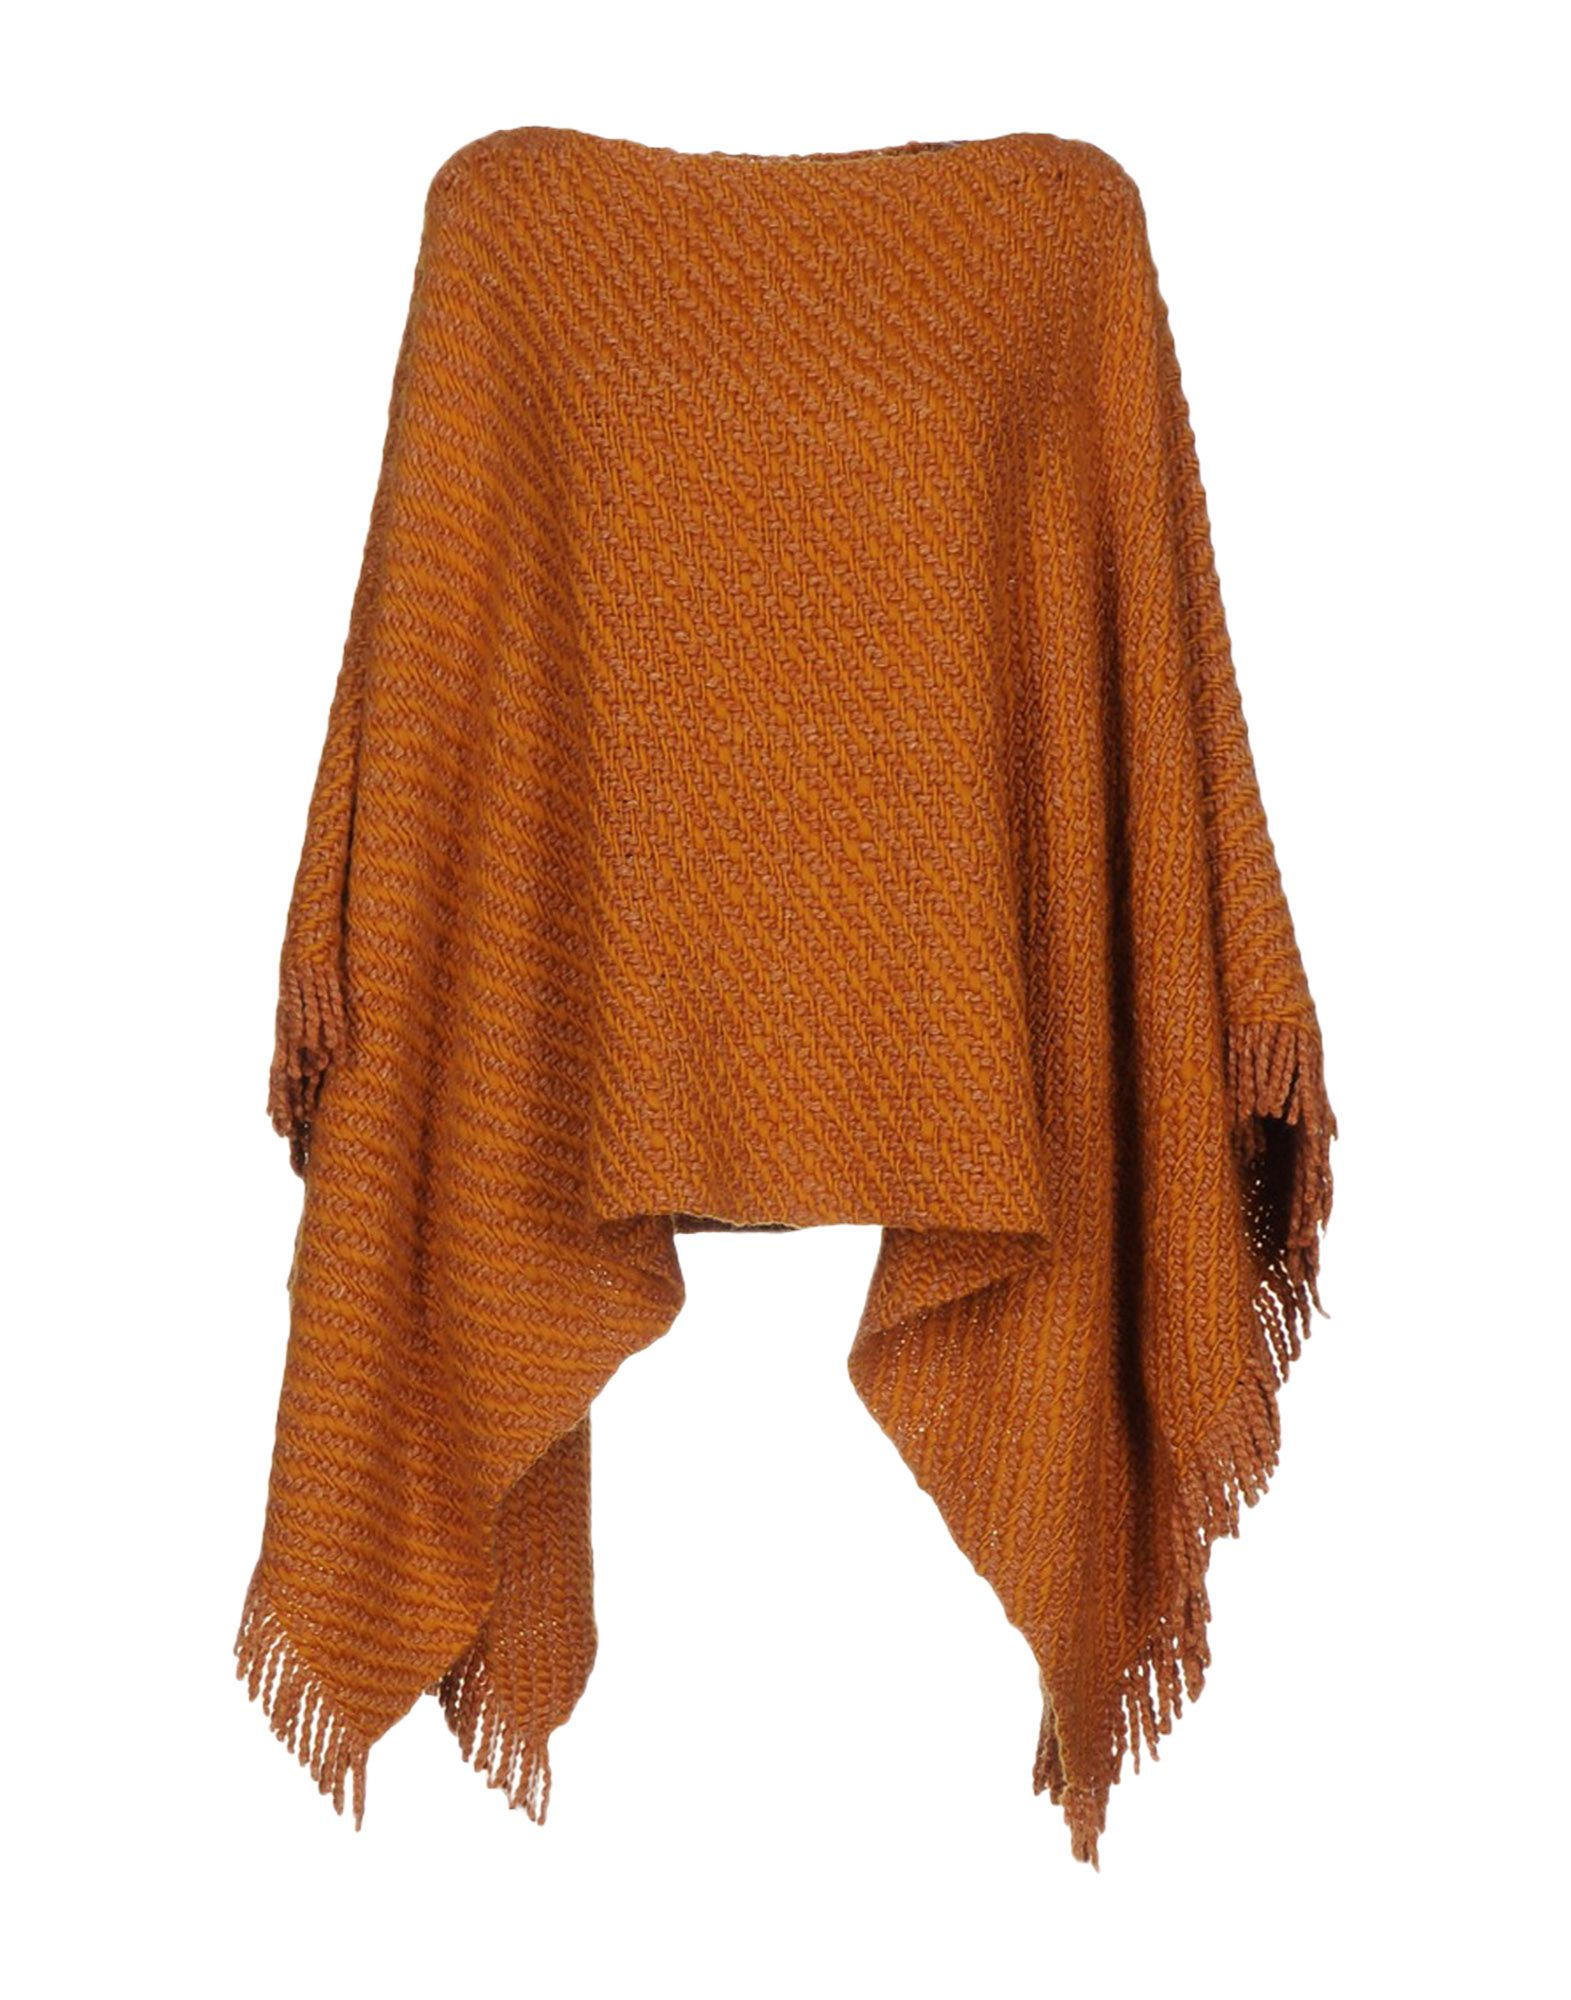 WEHVE Cape in Camel